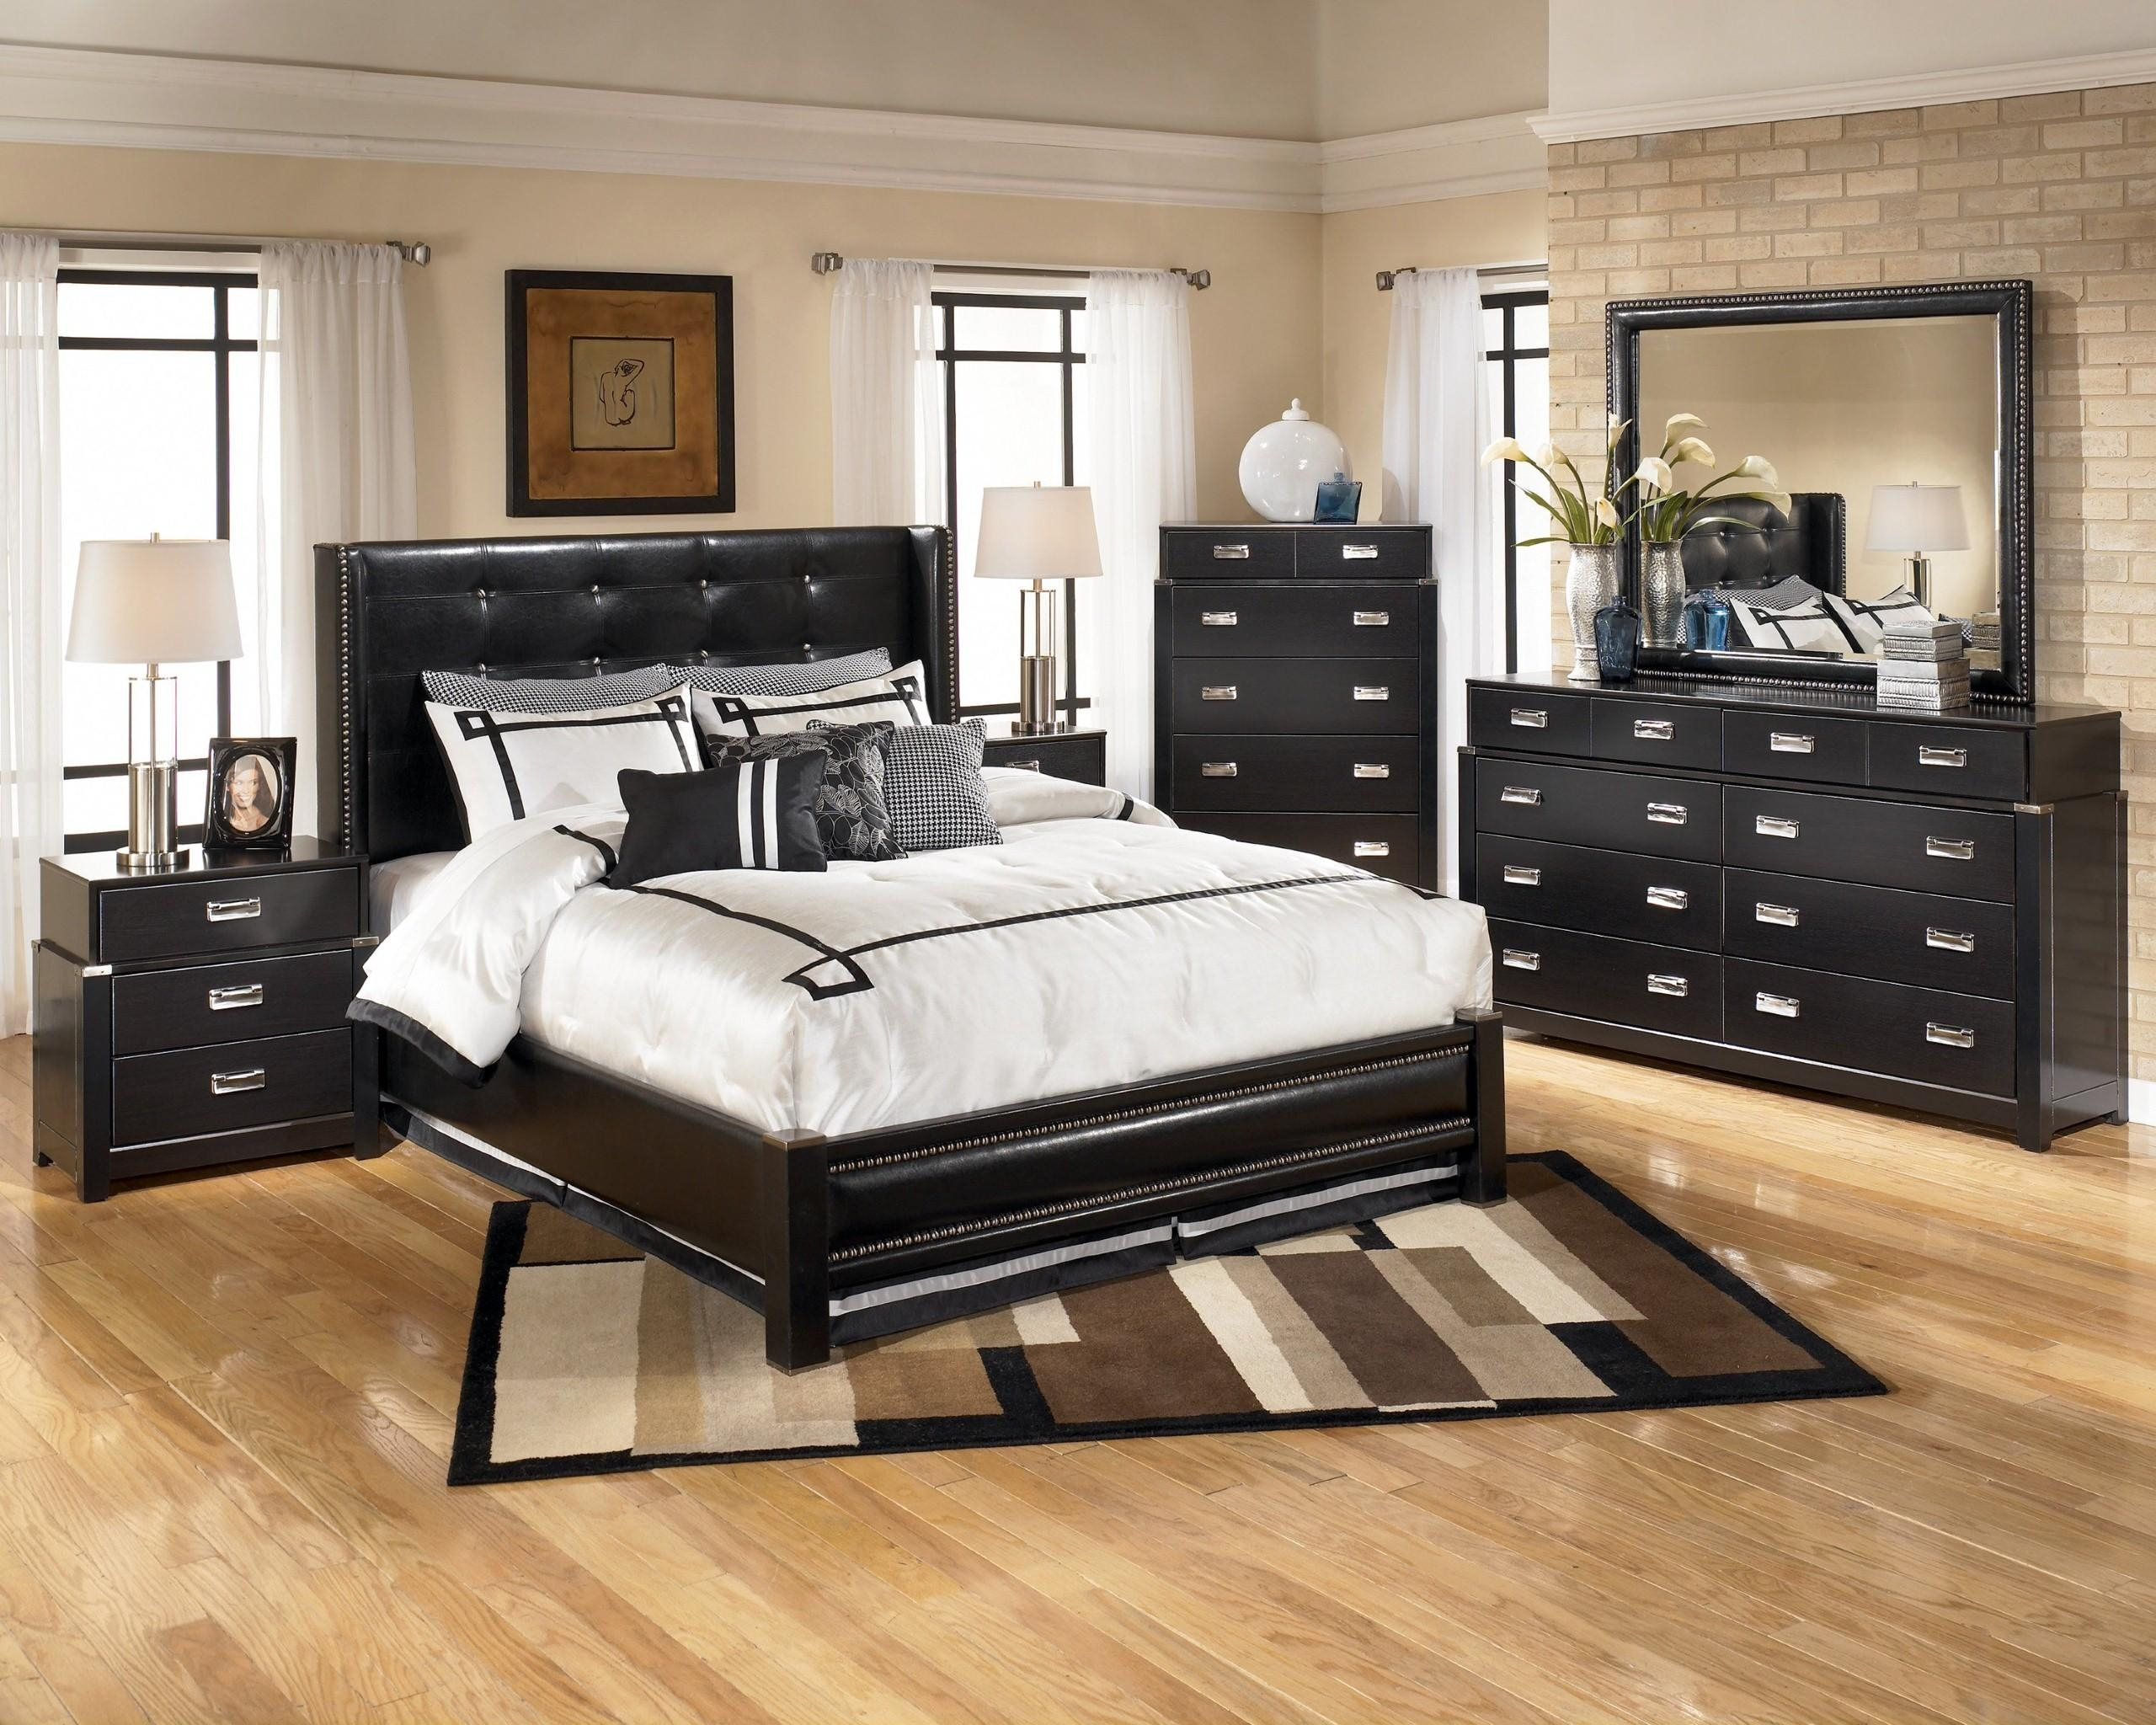 Bedroom : Large Black Bedroom Furniture Marble Wall Decor Floor Throughout Black Faux Leather Mirror (View 11 of 20)